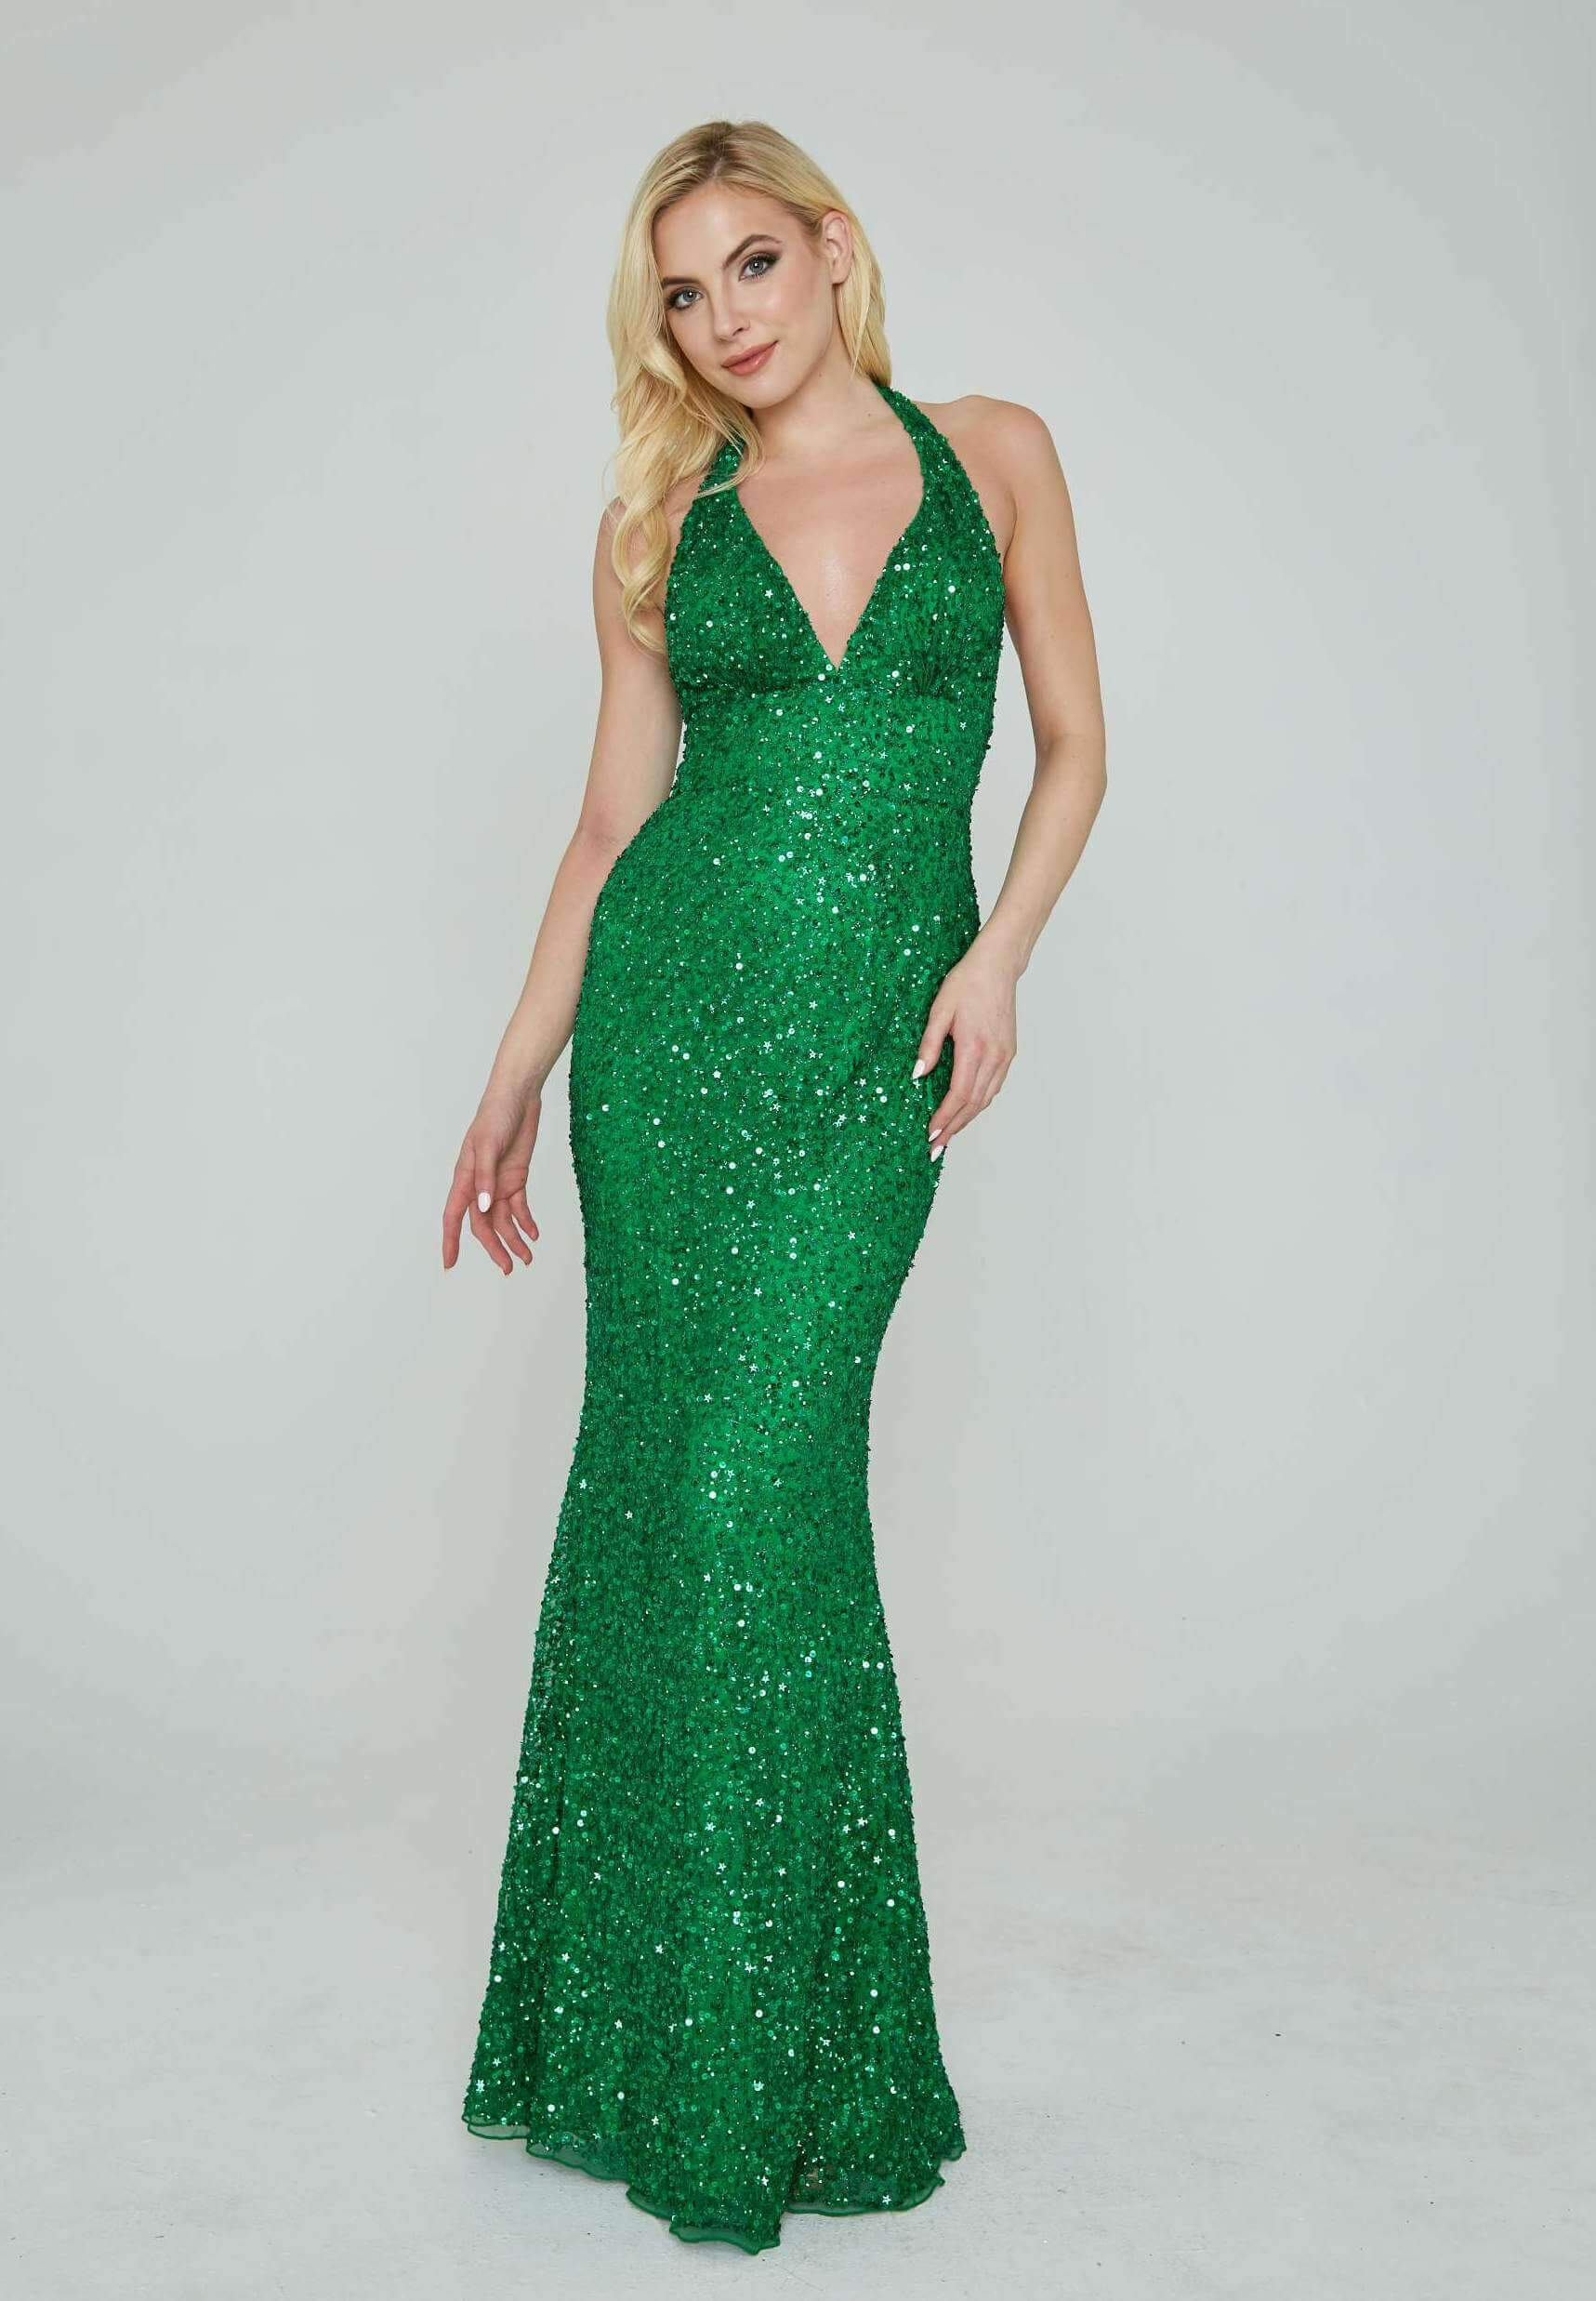 Style 353 Aleta Green Size 18 Halter Backless Tall Height Straight Dress on Queenly